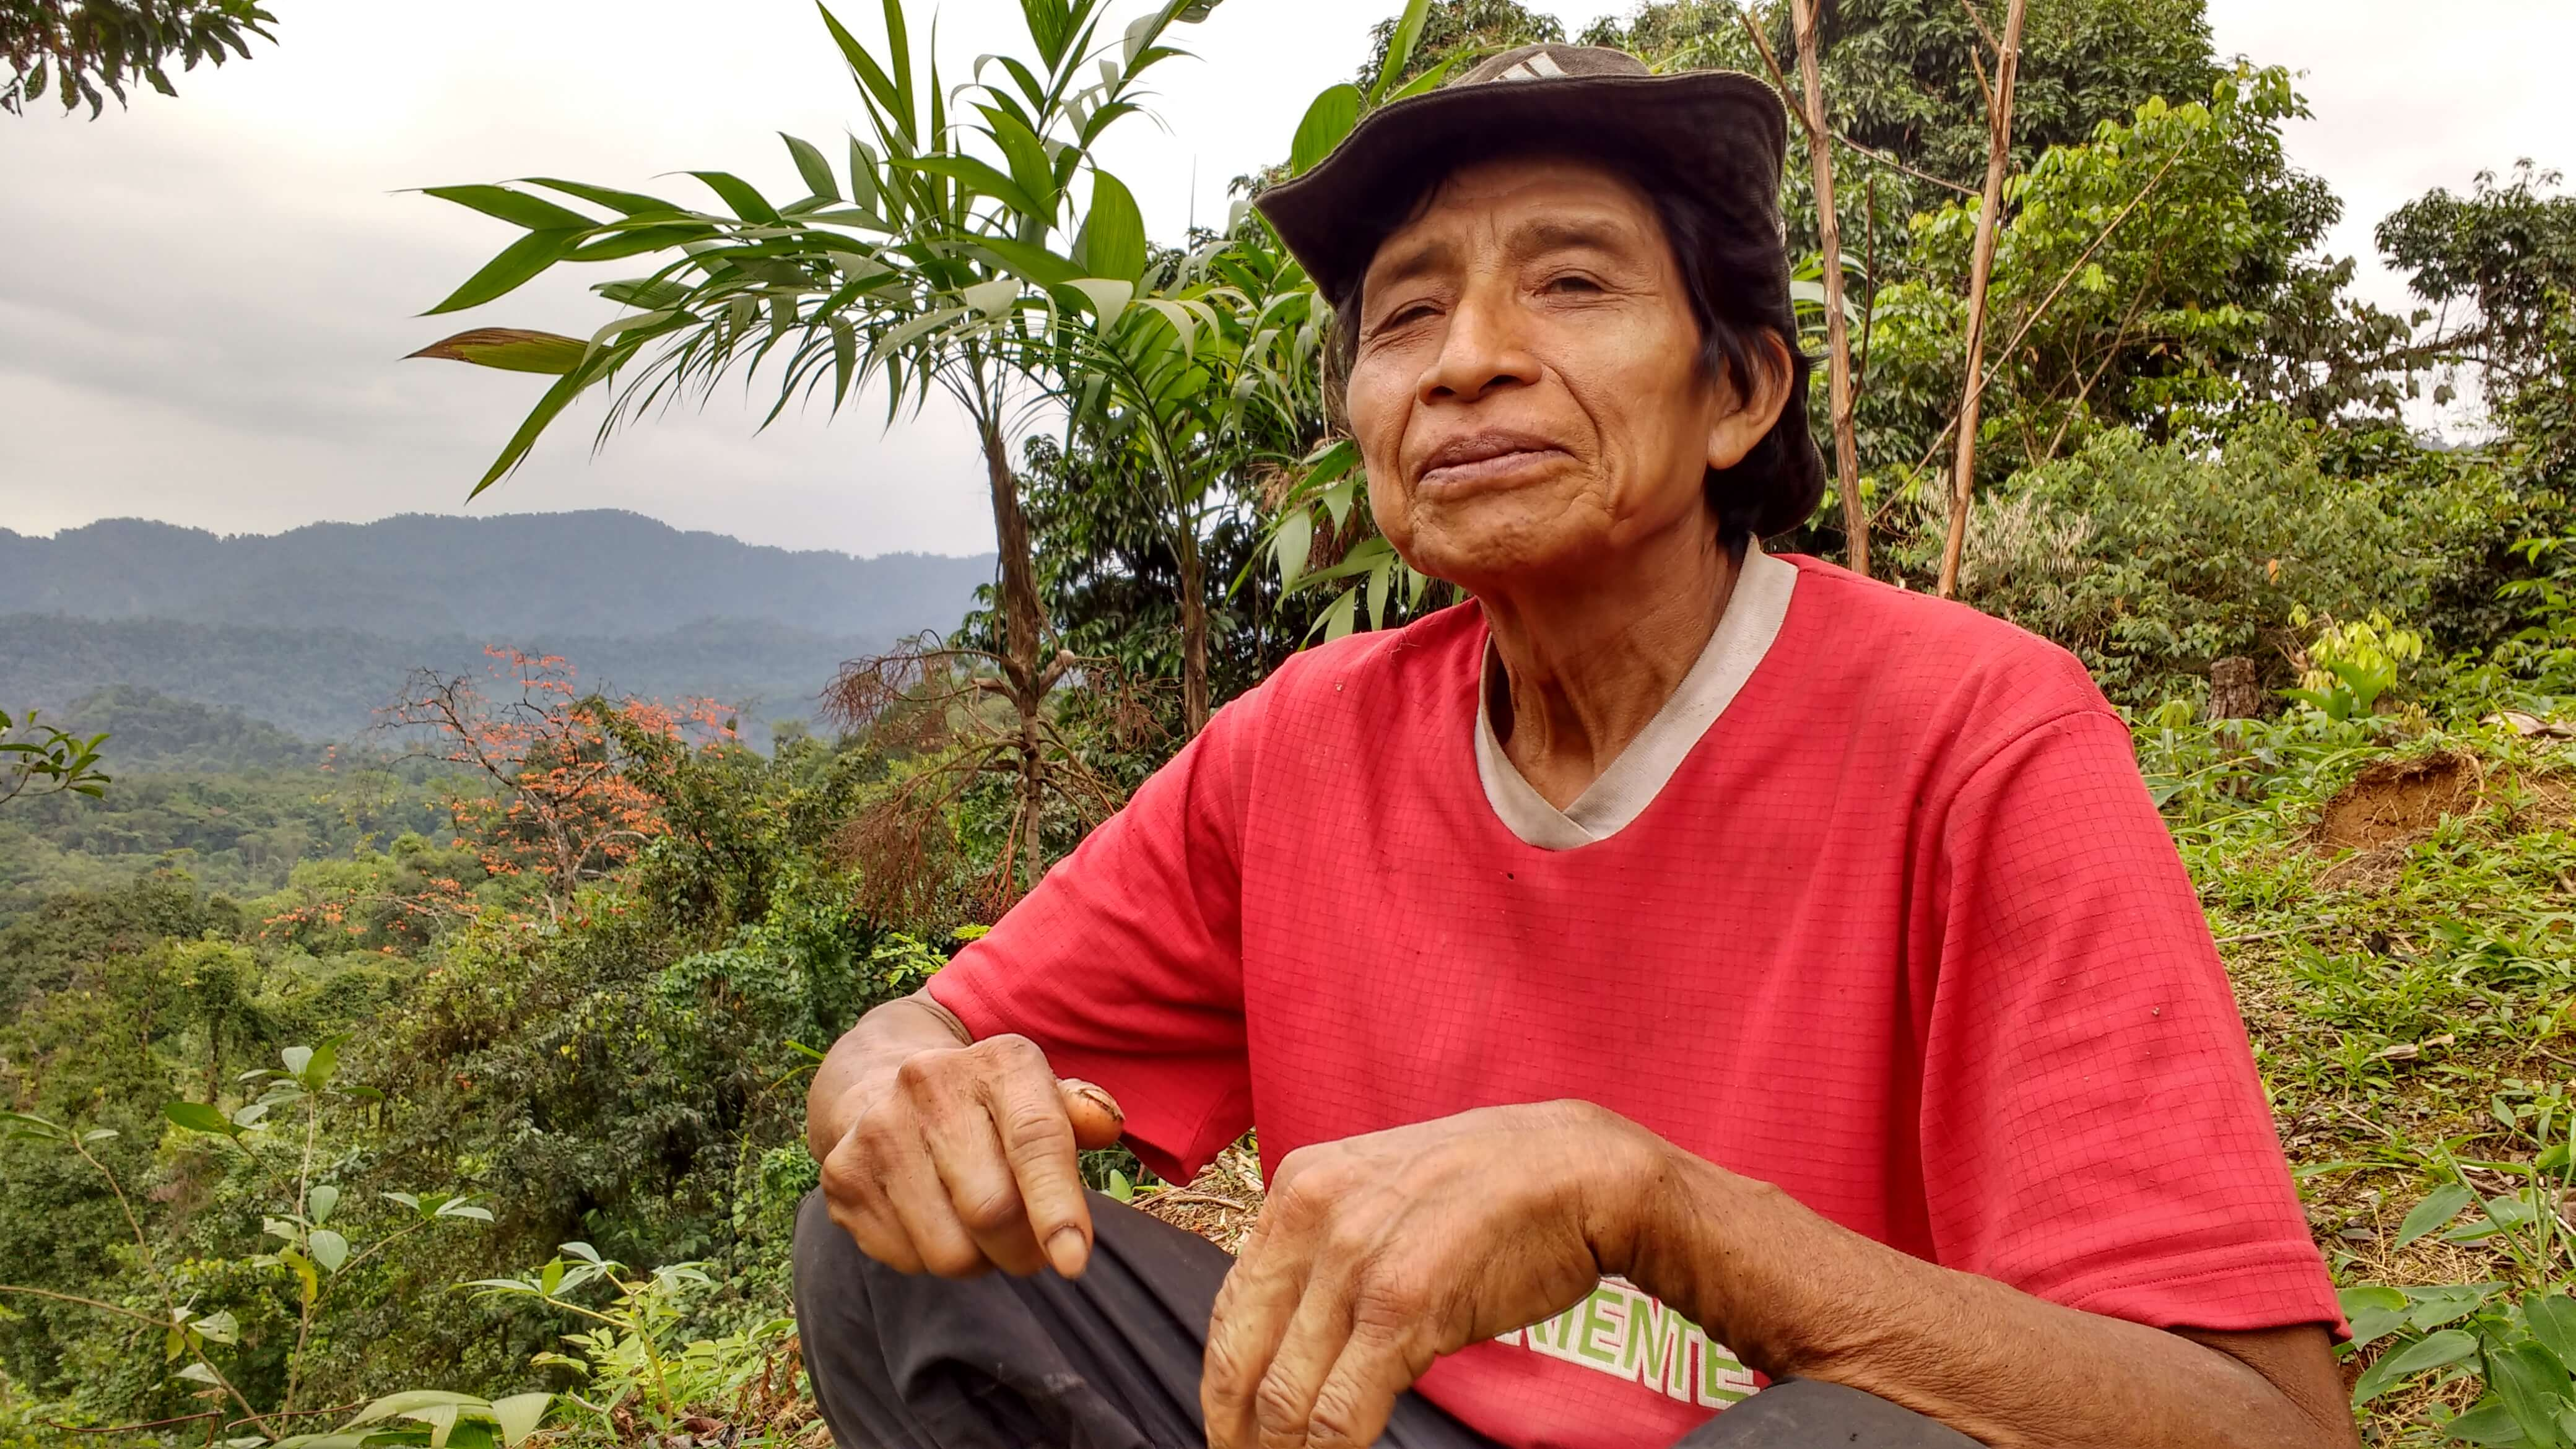 Until the Colombian government establishes a Tuberculosis Clinic in Cubará, the town's under-resourced health clinic is unable to properly identify or treat the disease such as in the case of Kuiuru Kobeua, who was sent home from the hospital with nothing but painkillers. Photo: Jake Ling